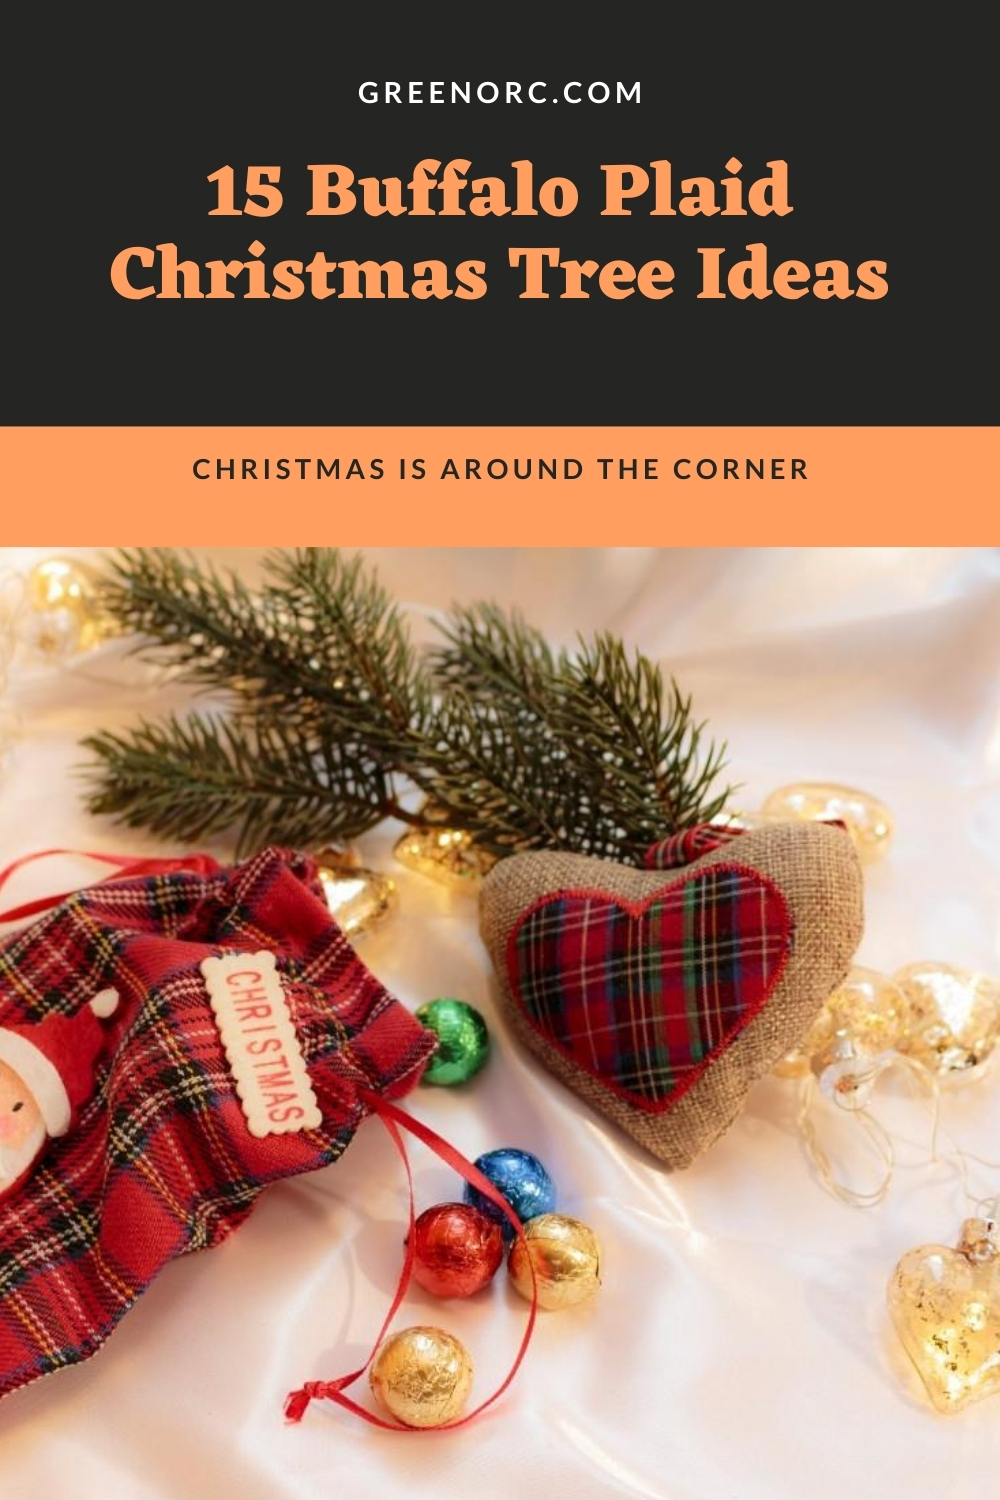 15 Buffalo Plaid Christmas Tree Ideas